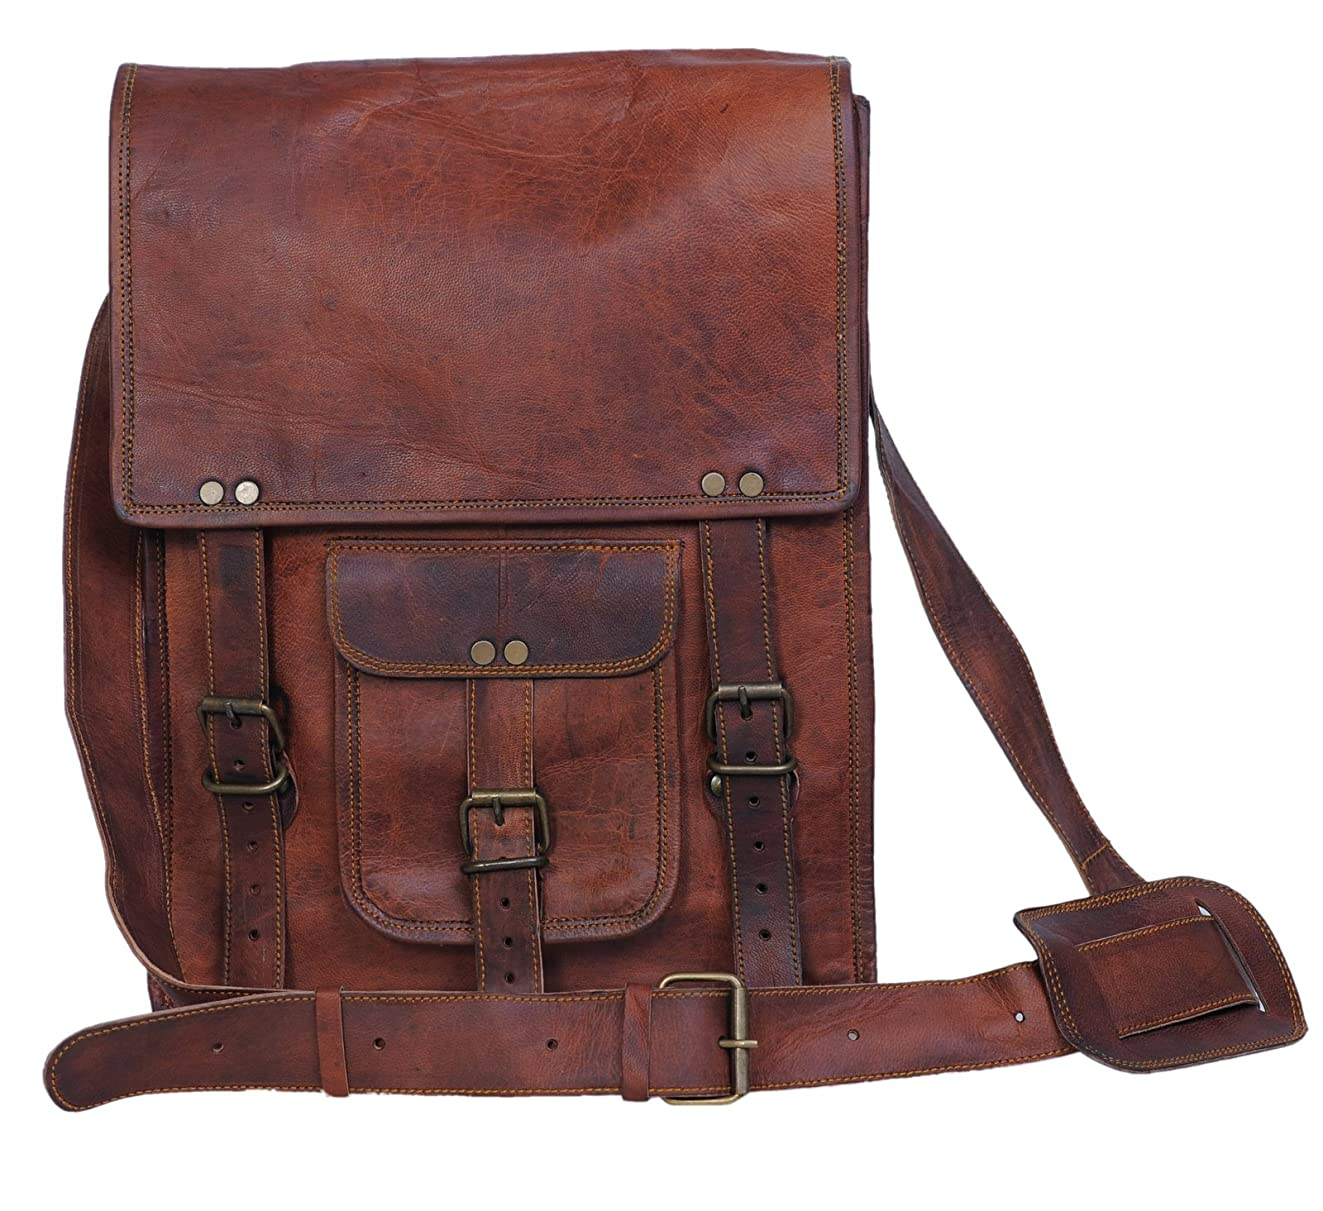 Komal's Passion Leather 11 Inch Sturdy Leather Ipad Messenger Satchel Bag